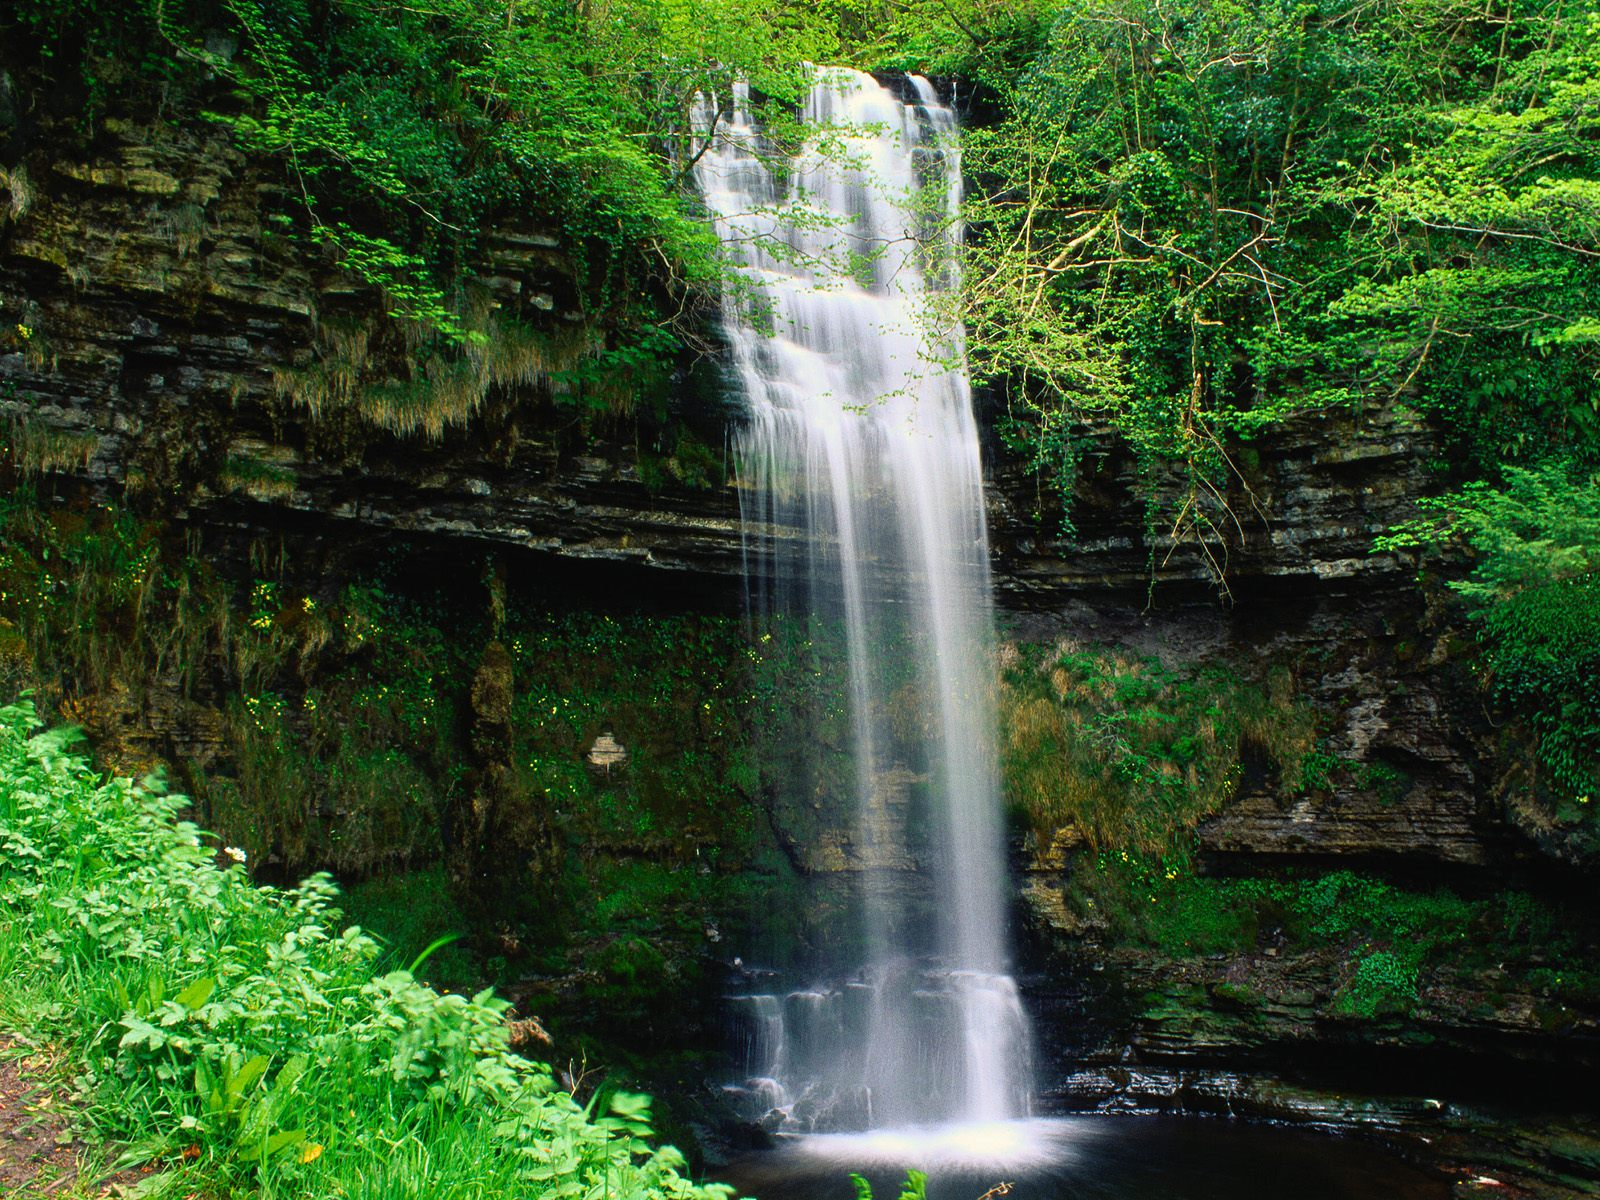 glencar waterfall ireland wallpaper - photo #1